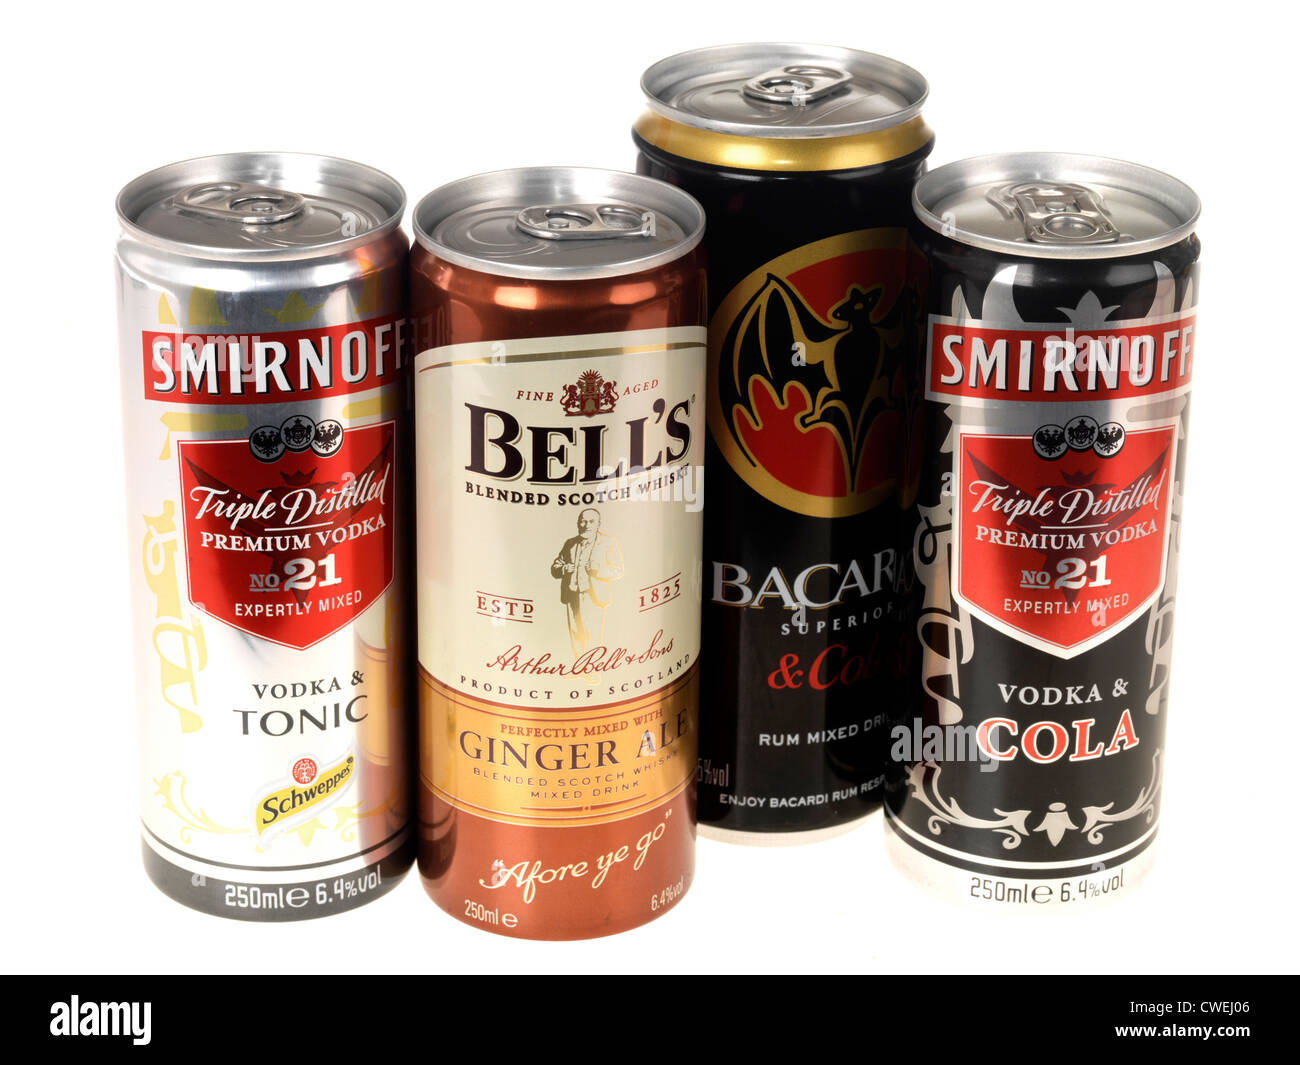 Cans of alcohol - Stock Image